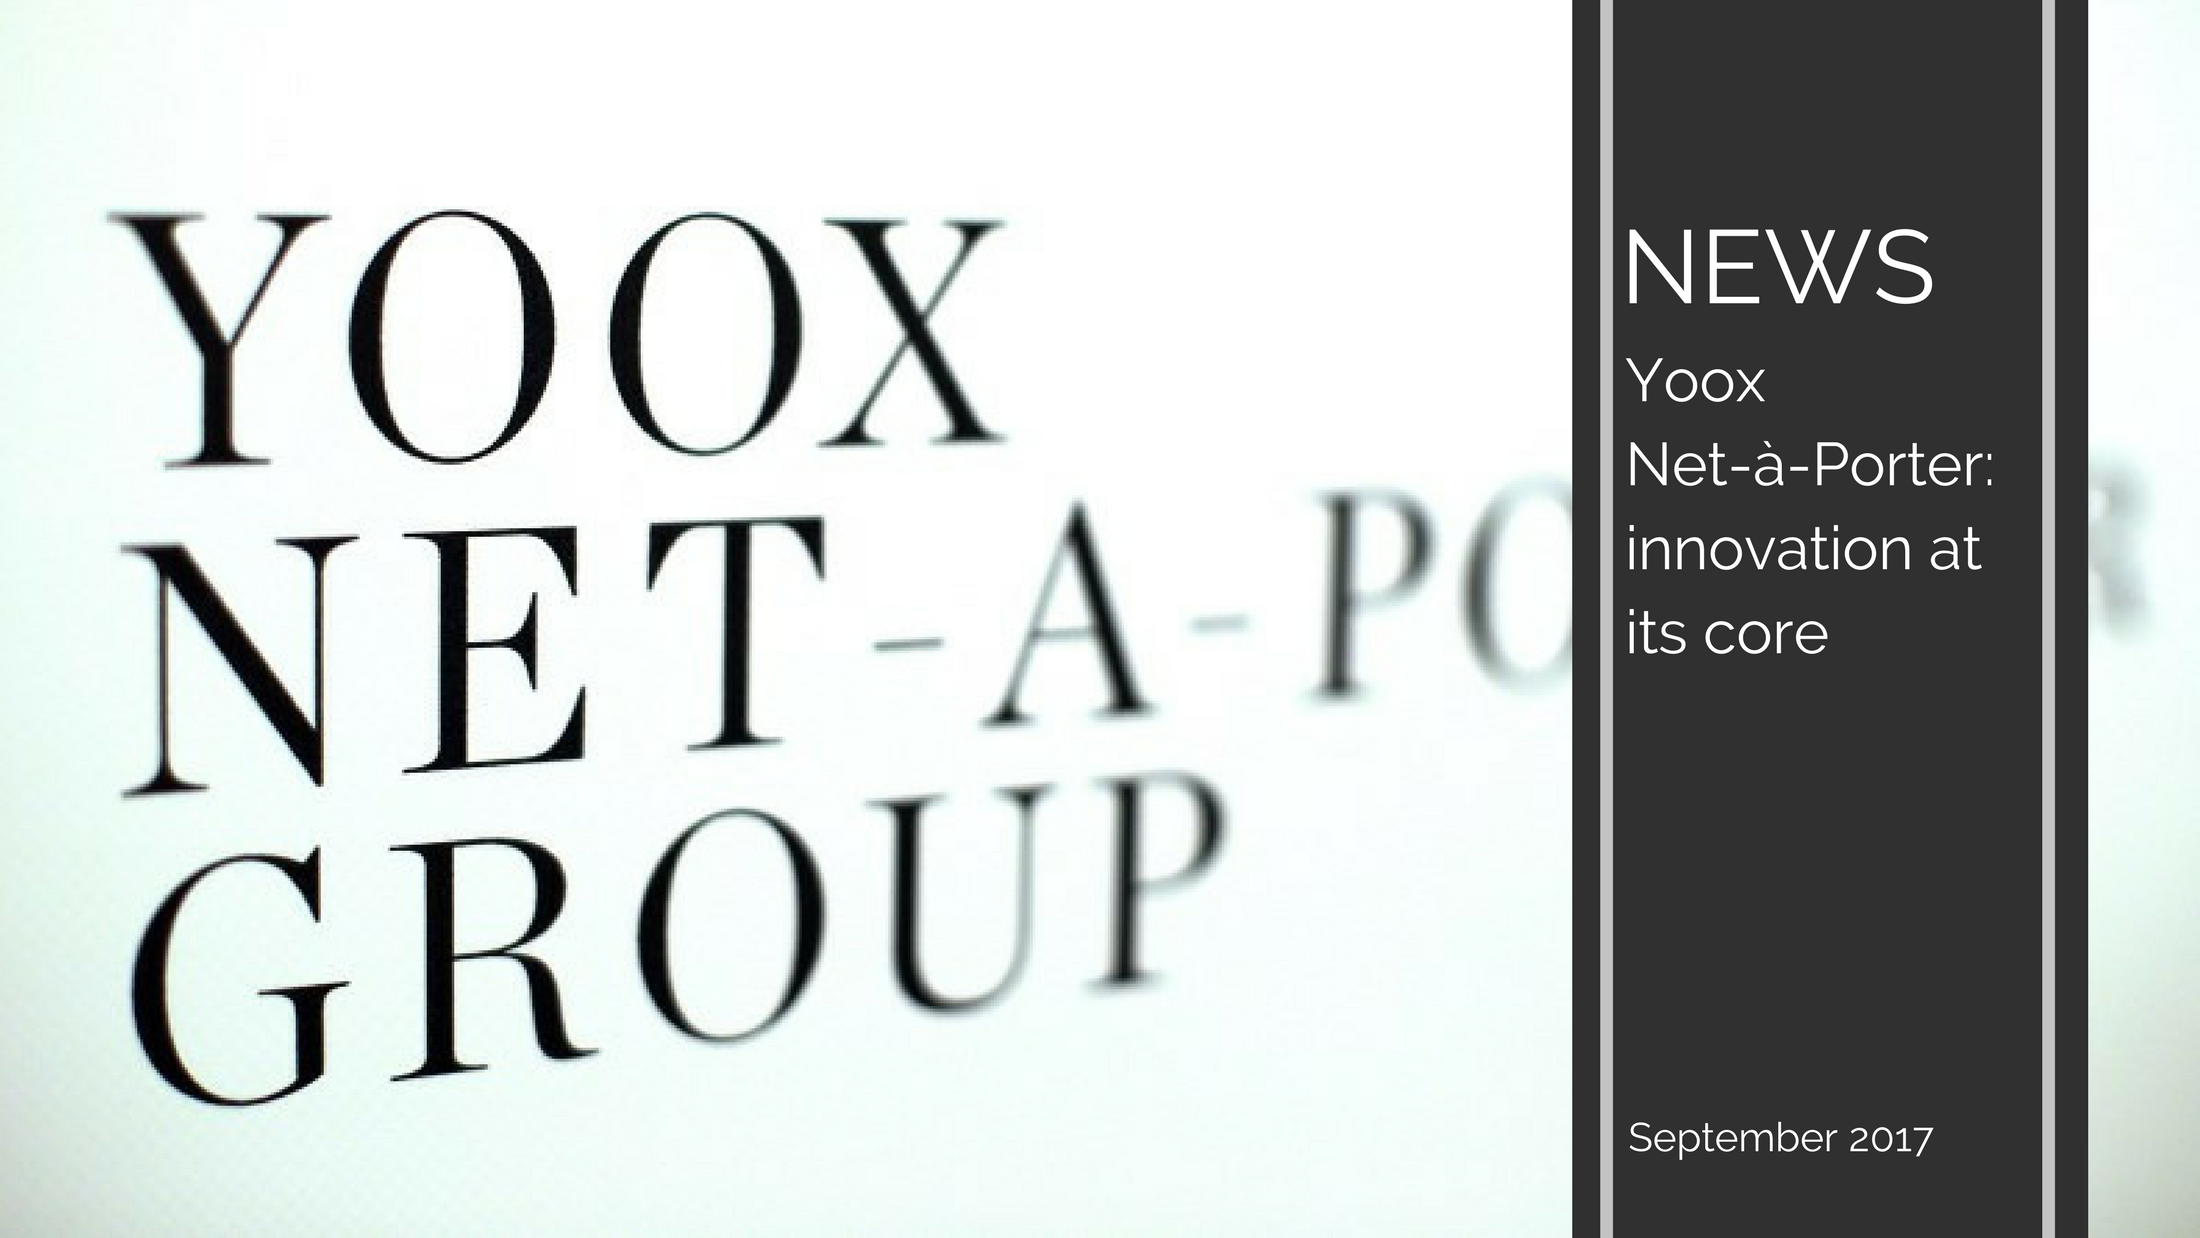 Trends News 11 - Yoox Net-à-Porter: innovation at its core